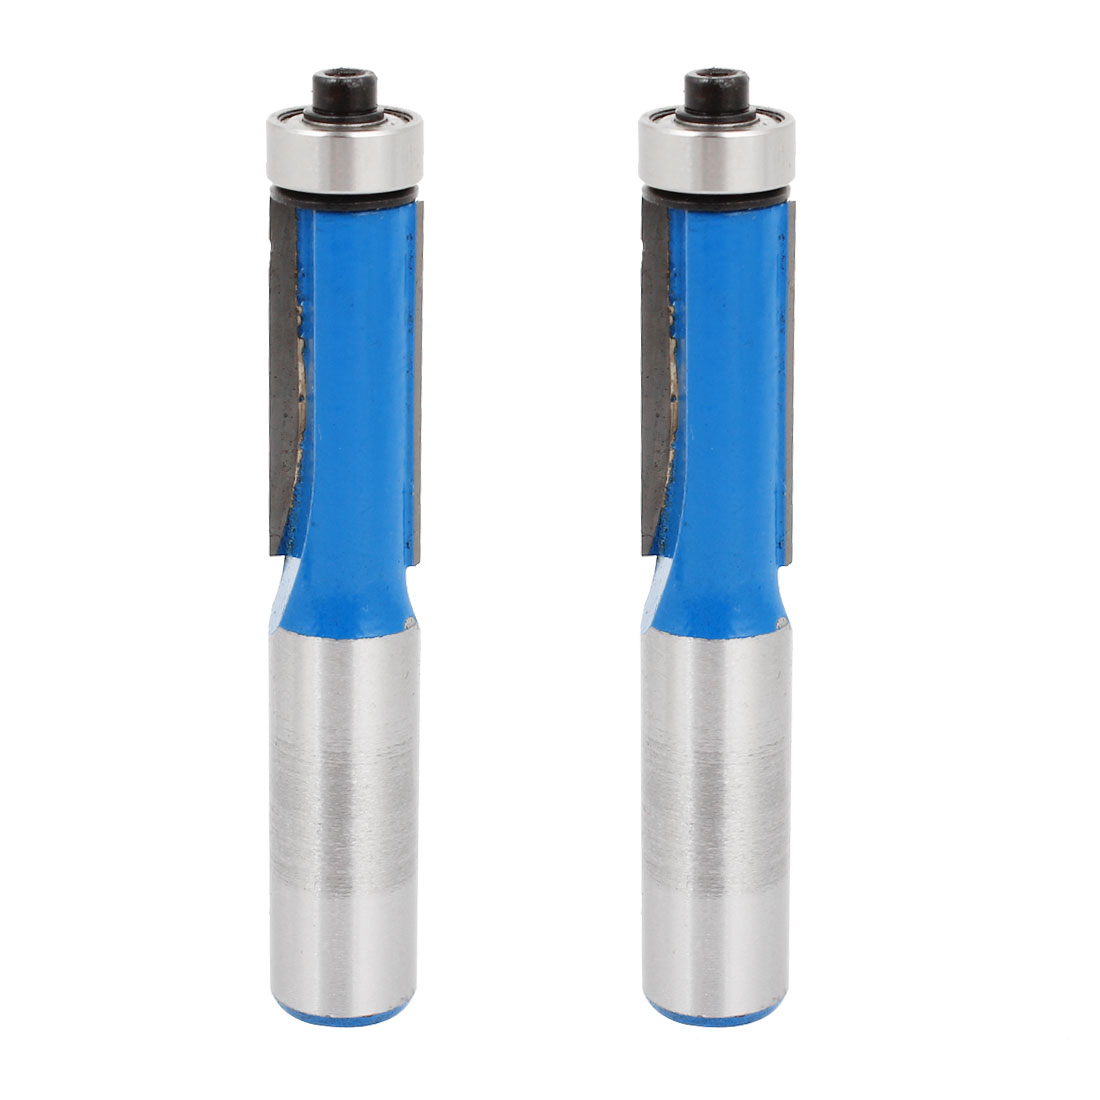 "1/2"" Cutting Dia 1/2"" Shank End Bearing Flush Trim Router Bit 2 Pcs"